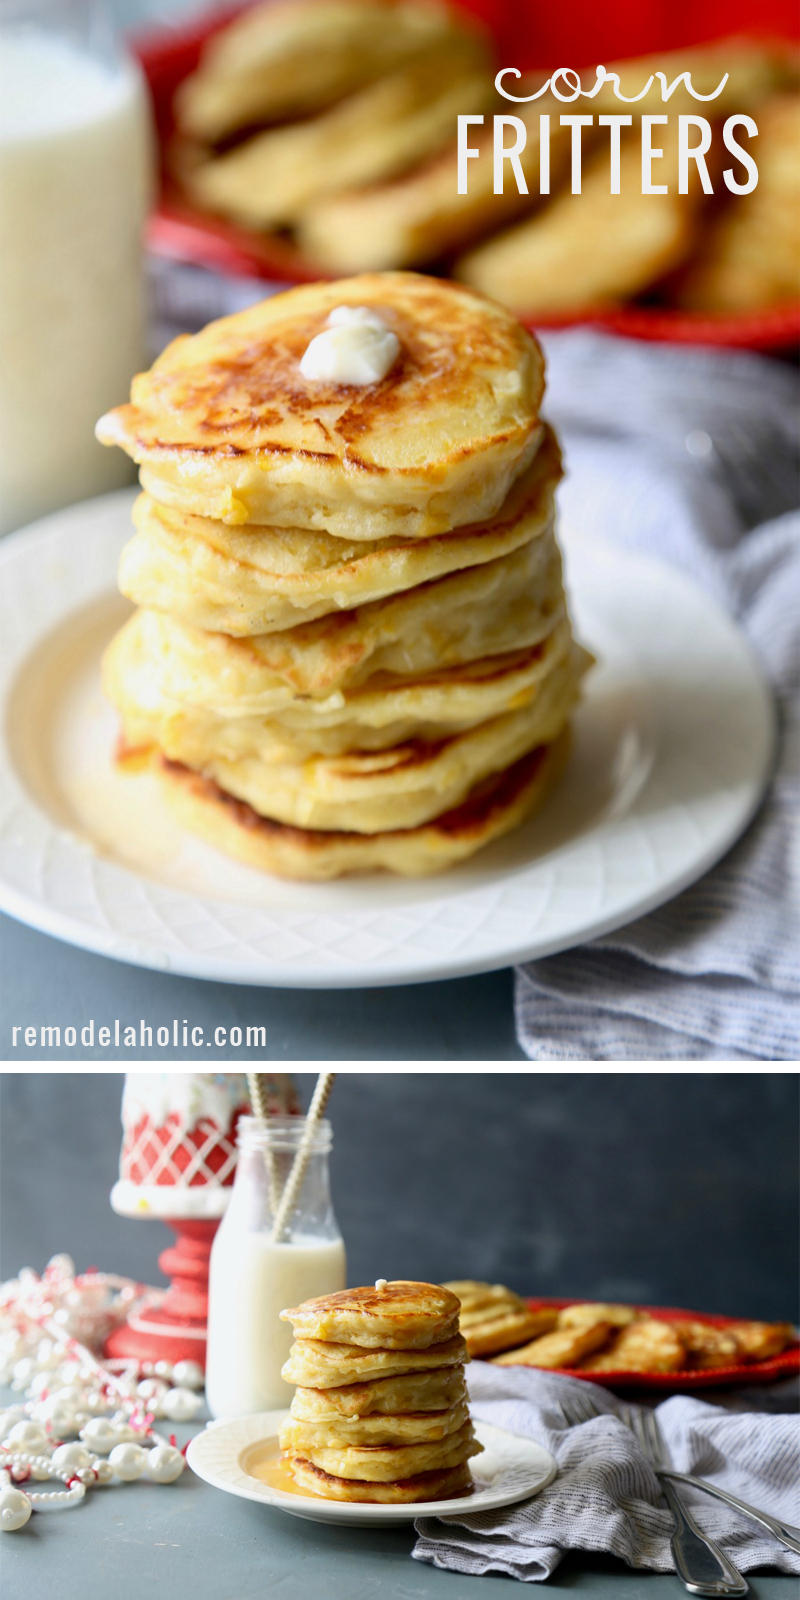 A yummy take on breakfast. Try this recipe for corn fritters at Remodelaholic.com